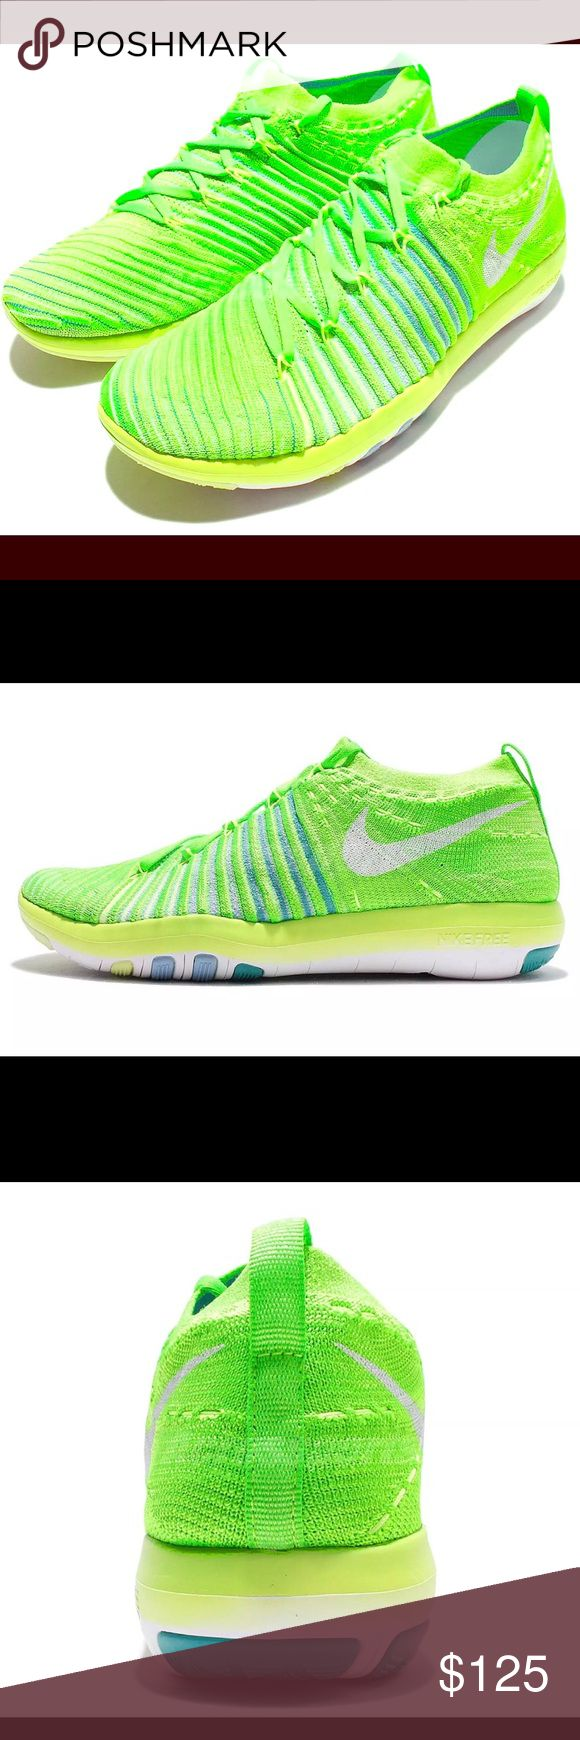 🔥NIKE CLEARANCE🔥 SZ 12 ⚡️NIKE WMNS ⚡️FREE TRANSFORM FLYKNIT SZ 12 Elec. Green/wht/jade 833410-302 NWT Transform your fitness life with these electric green, white and hyper Jade flyknit shoes designed for training! MSRP $150 SZ12 Womens NWT *Box is missing top Nike Shoes Athletic Shoes